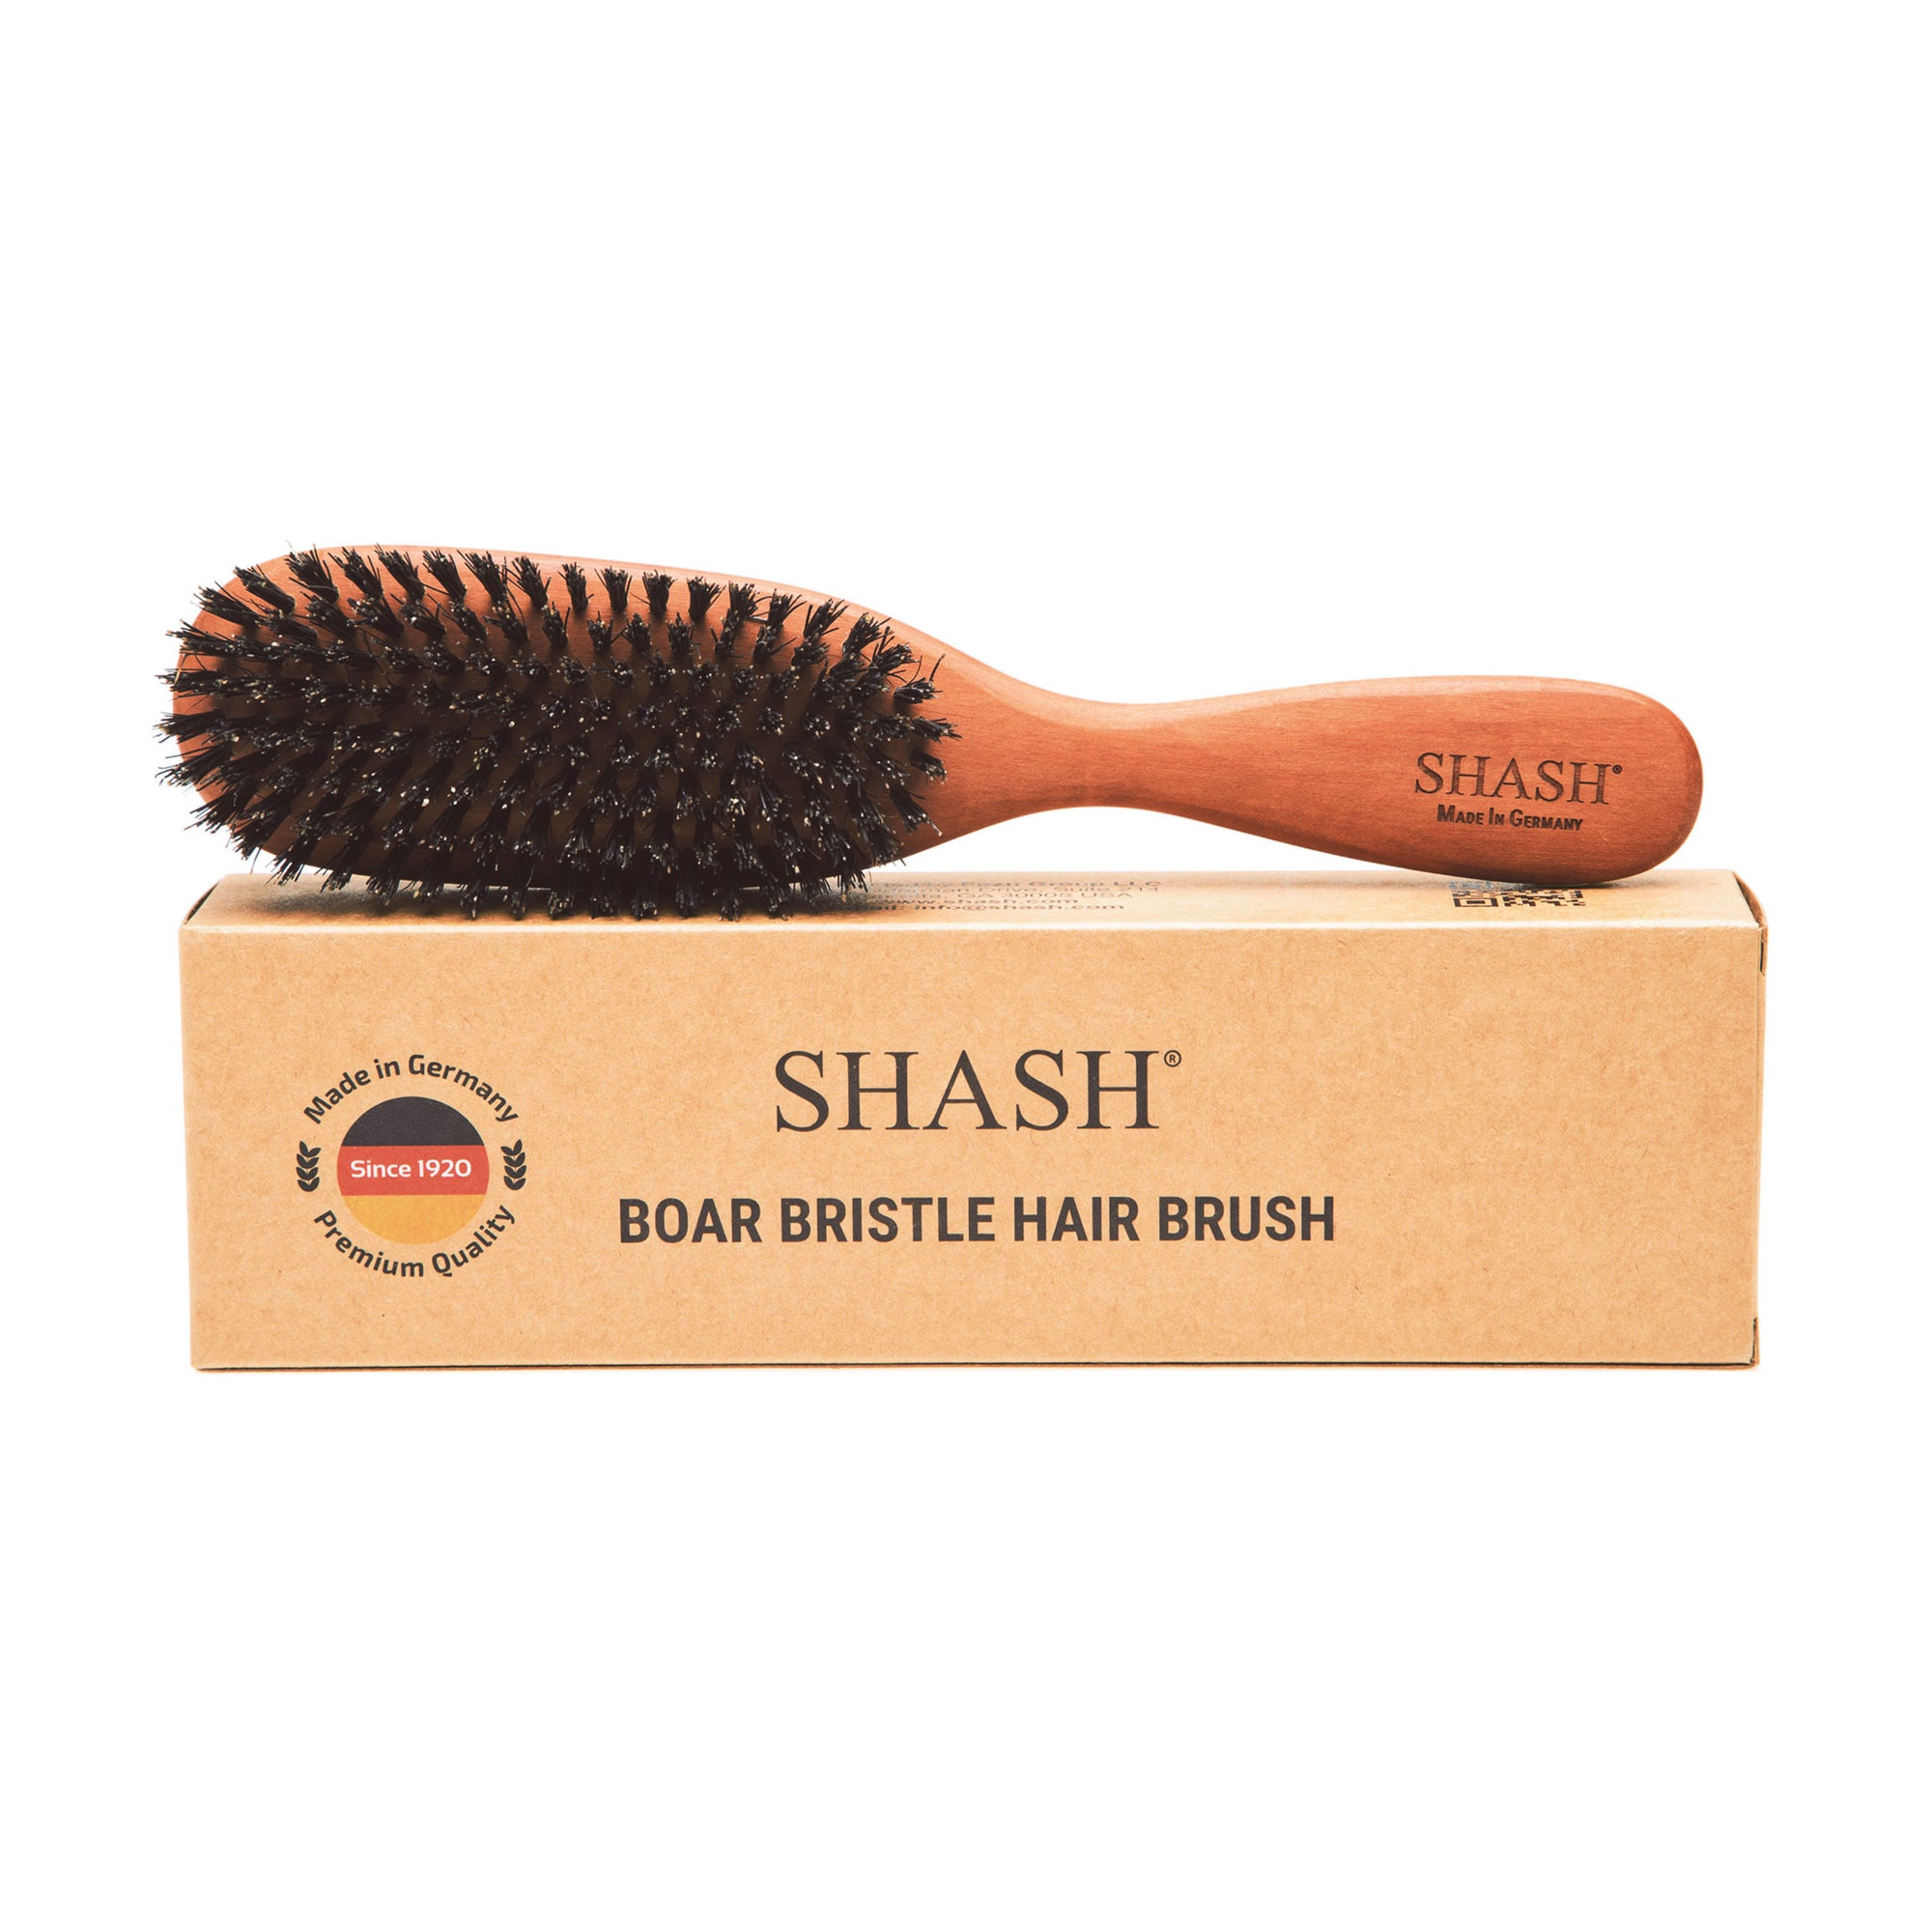 The Classic Hair Brush